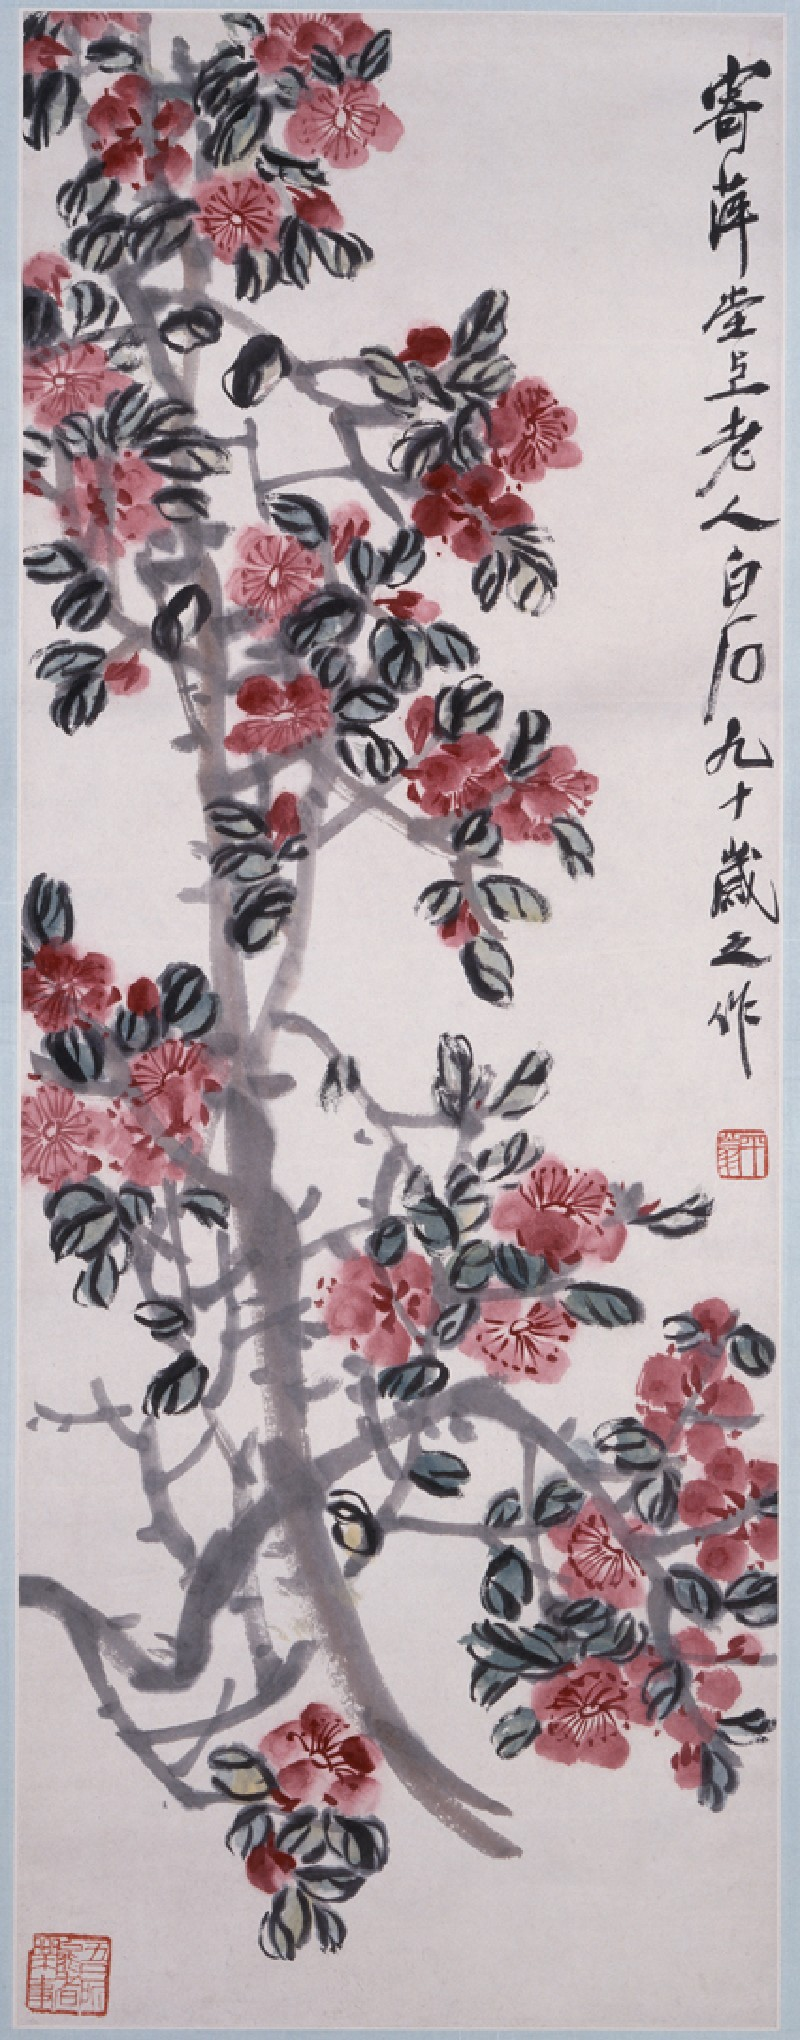 Plum blossom (front, painting only           )